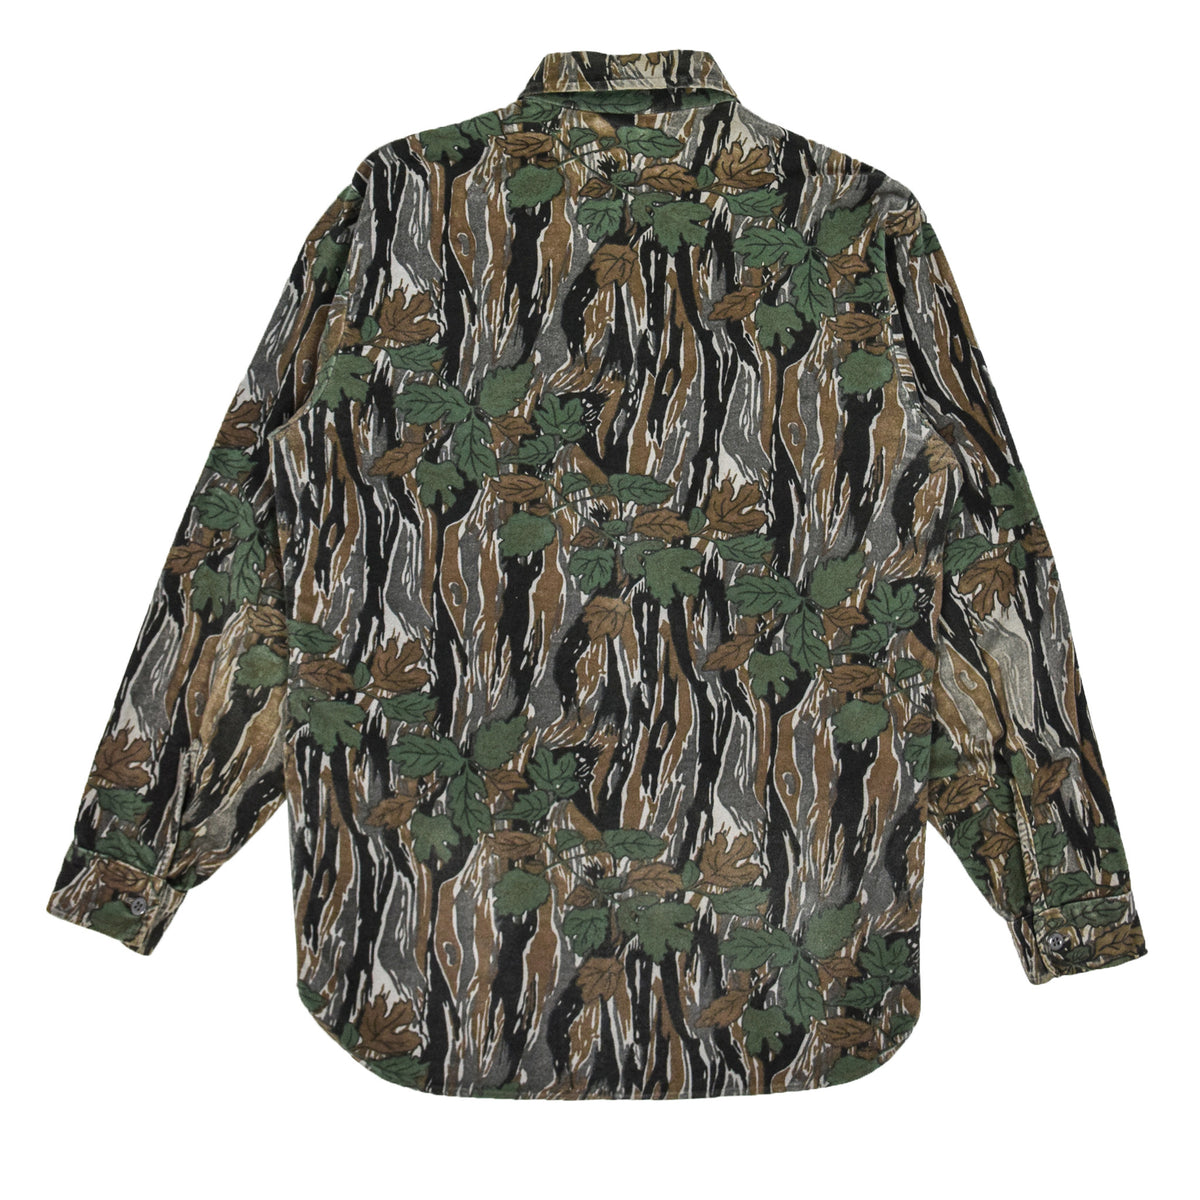 Vintage Ideal Camouflage Hunting Shooting Cotton Long Sleeve Shirt Made in USA M back